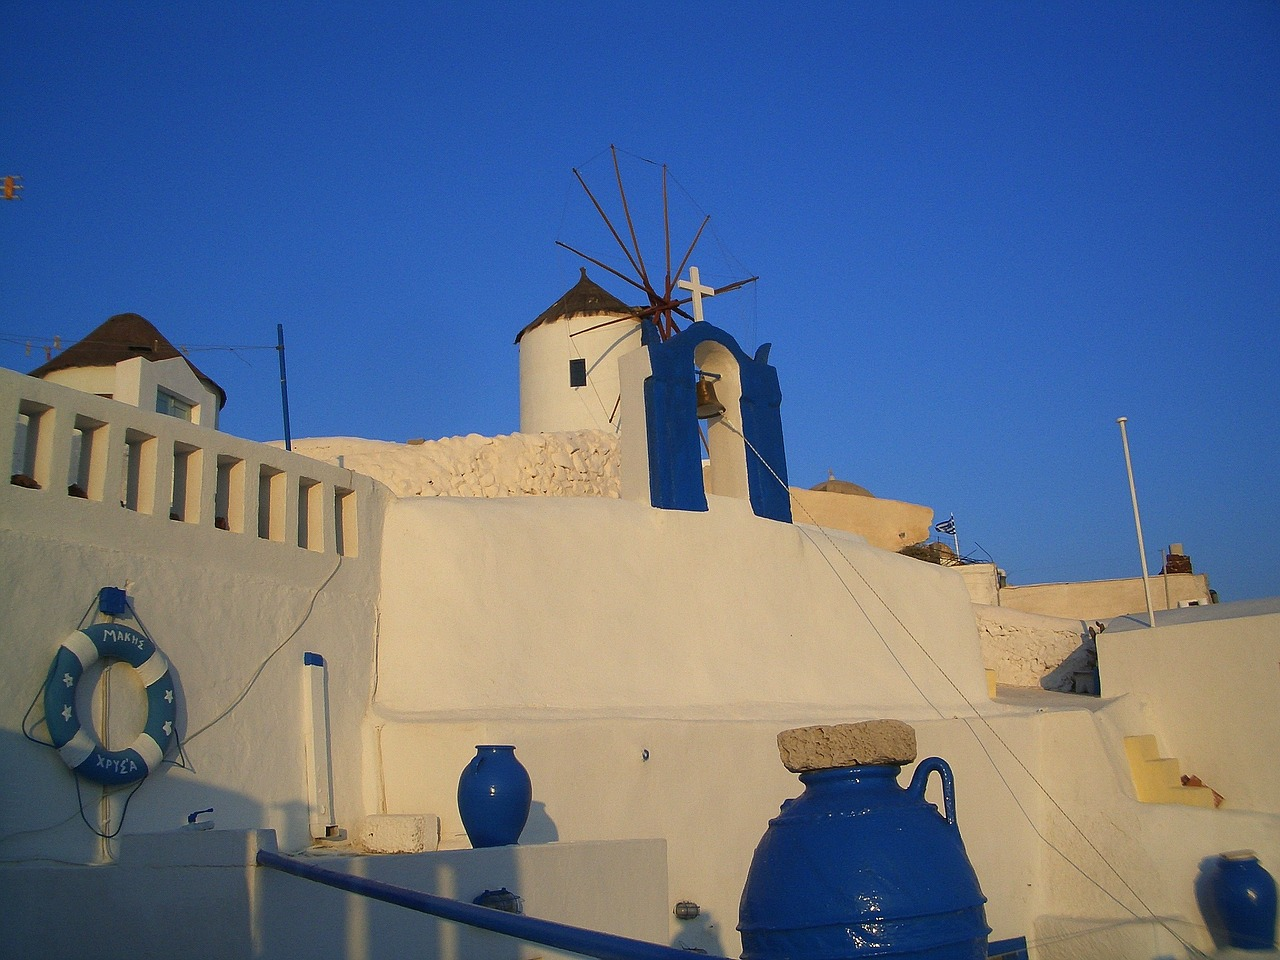 santorin greece building free photo